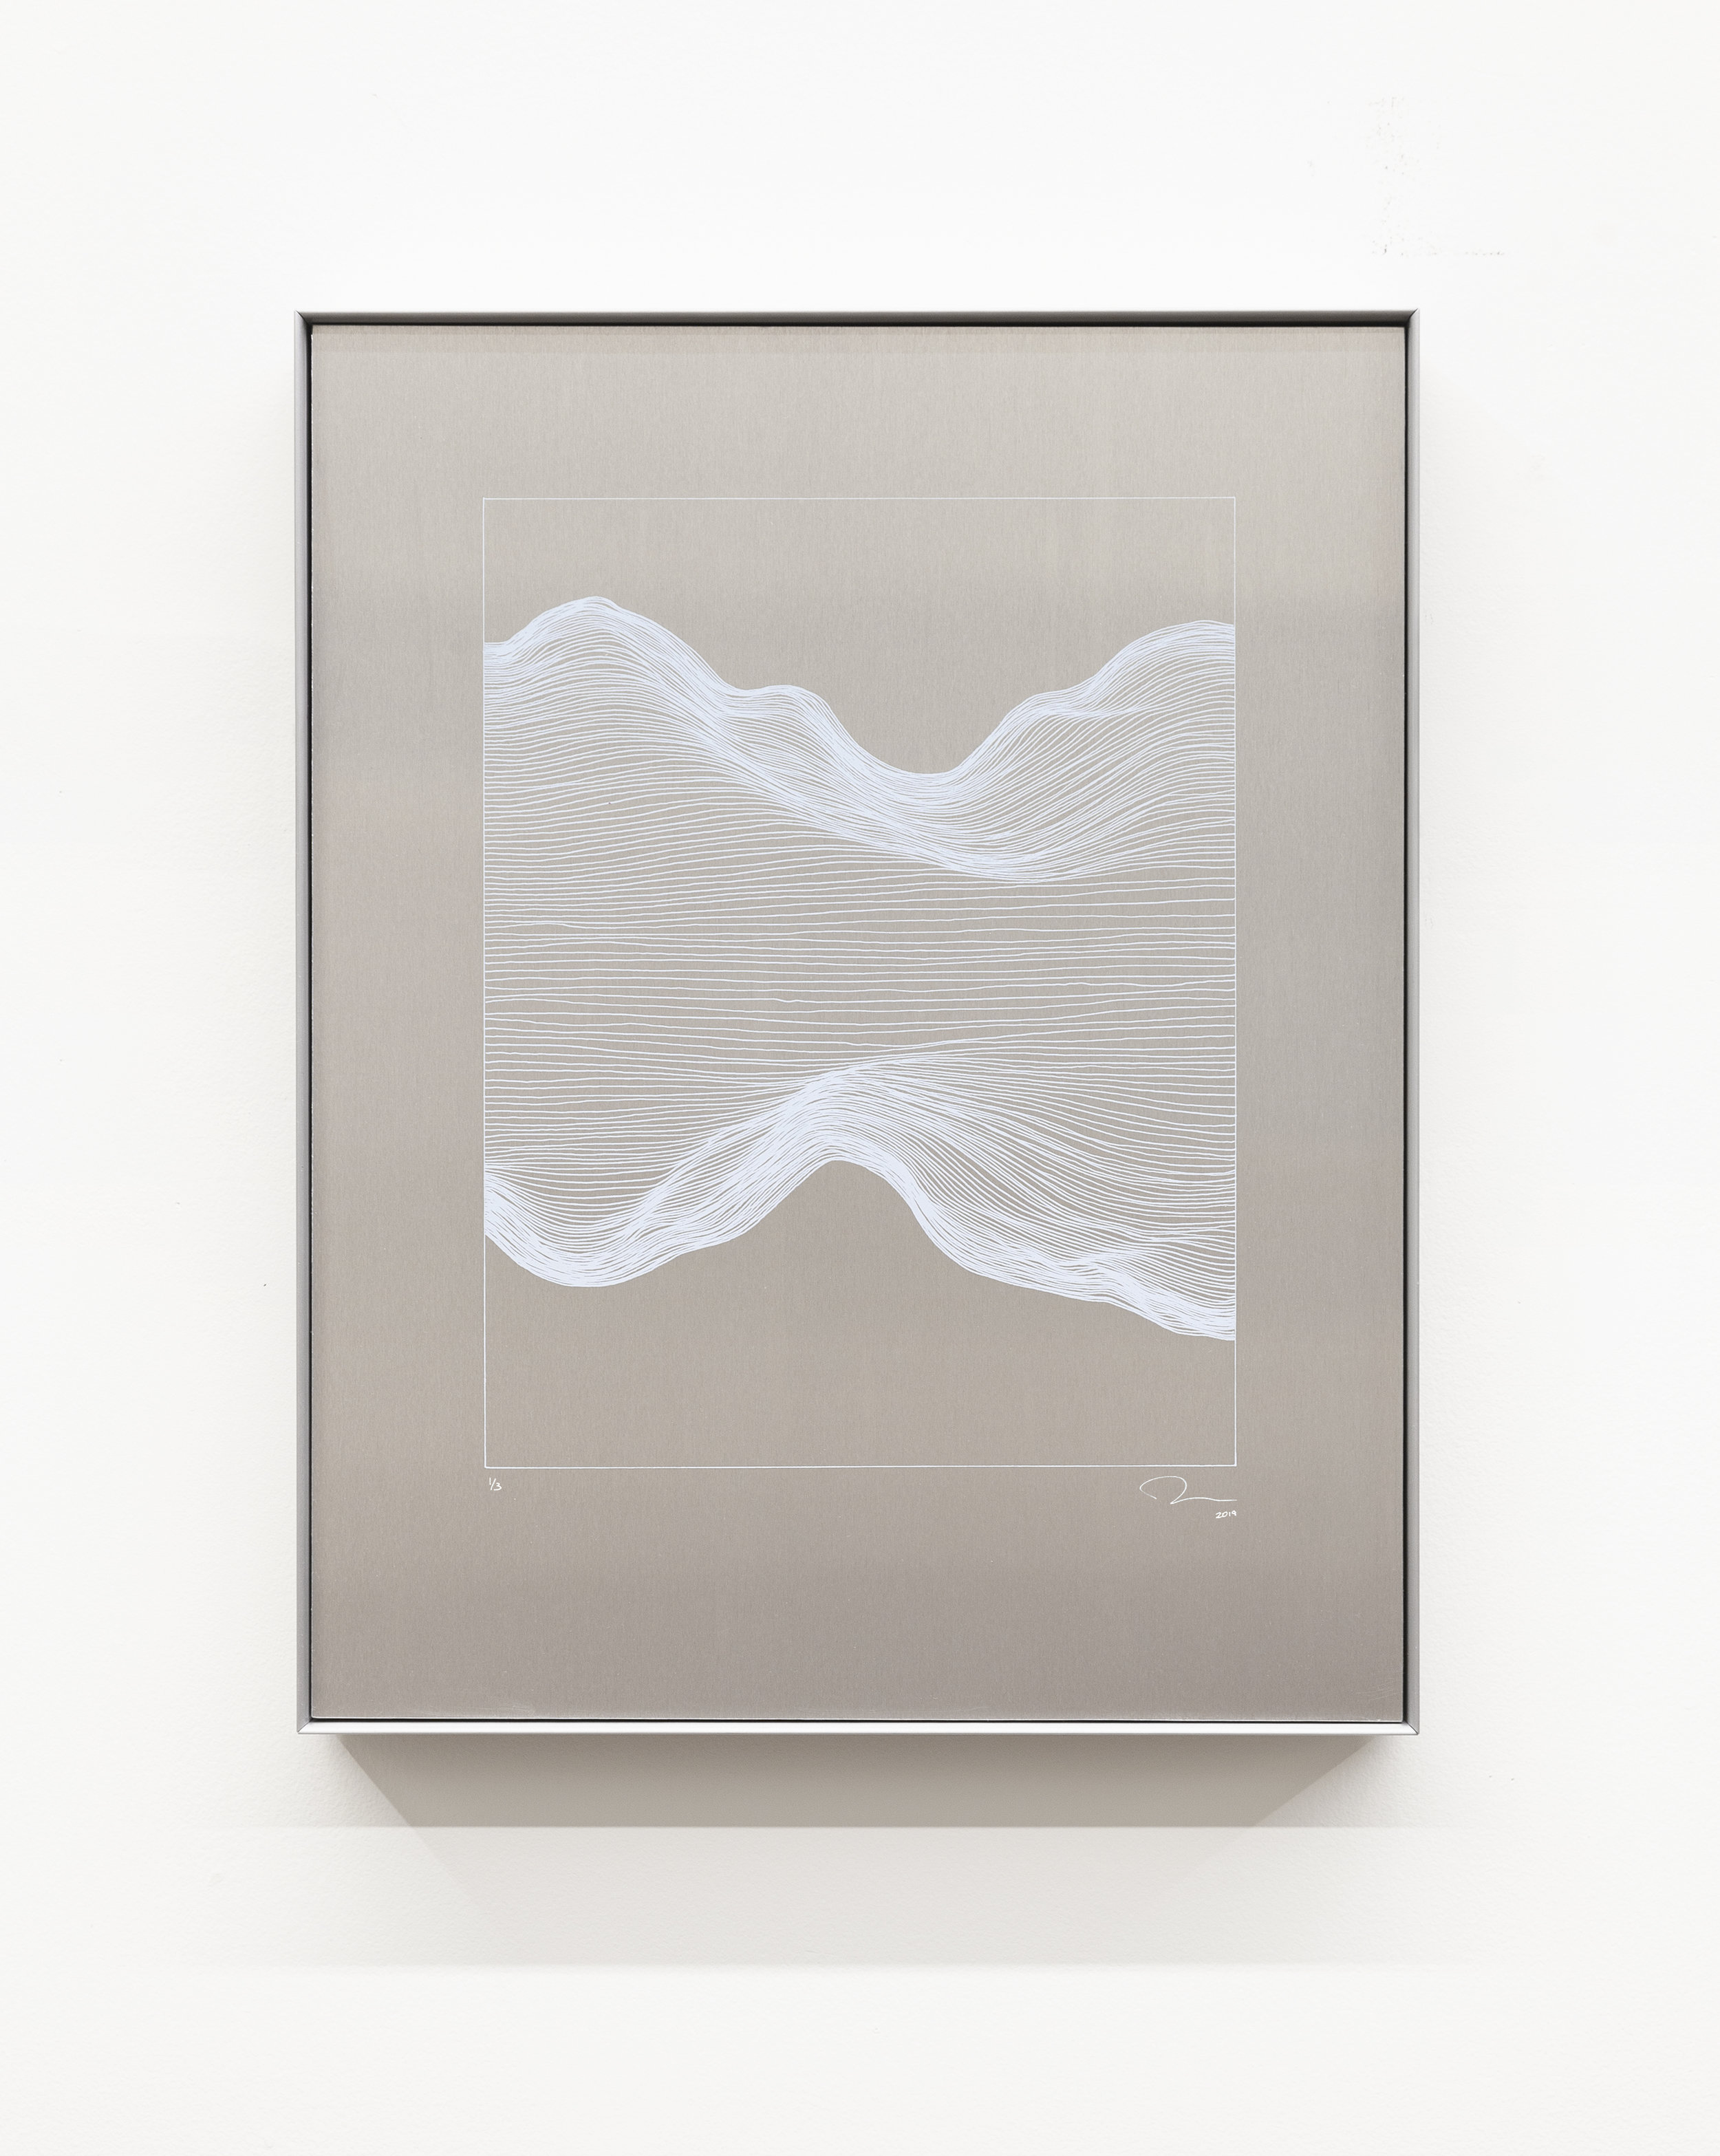 MimiJung_Live_Edge_Form_Drawing_Print_On_Aluminum_92419.jpg